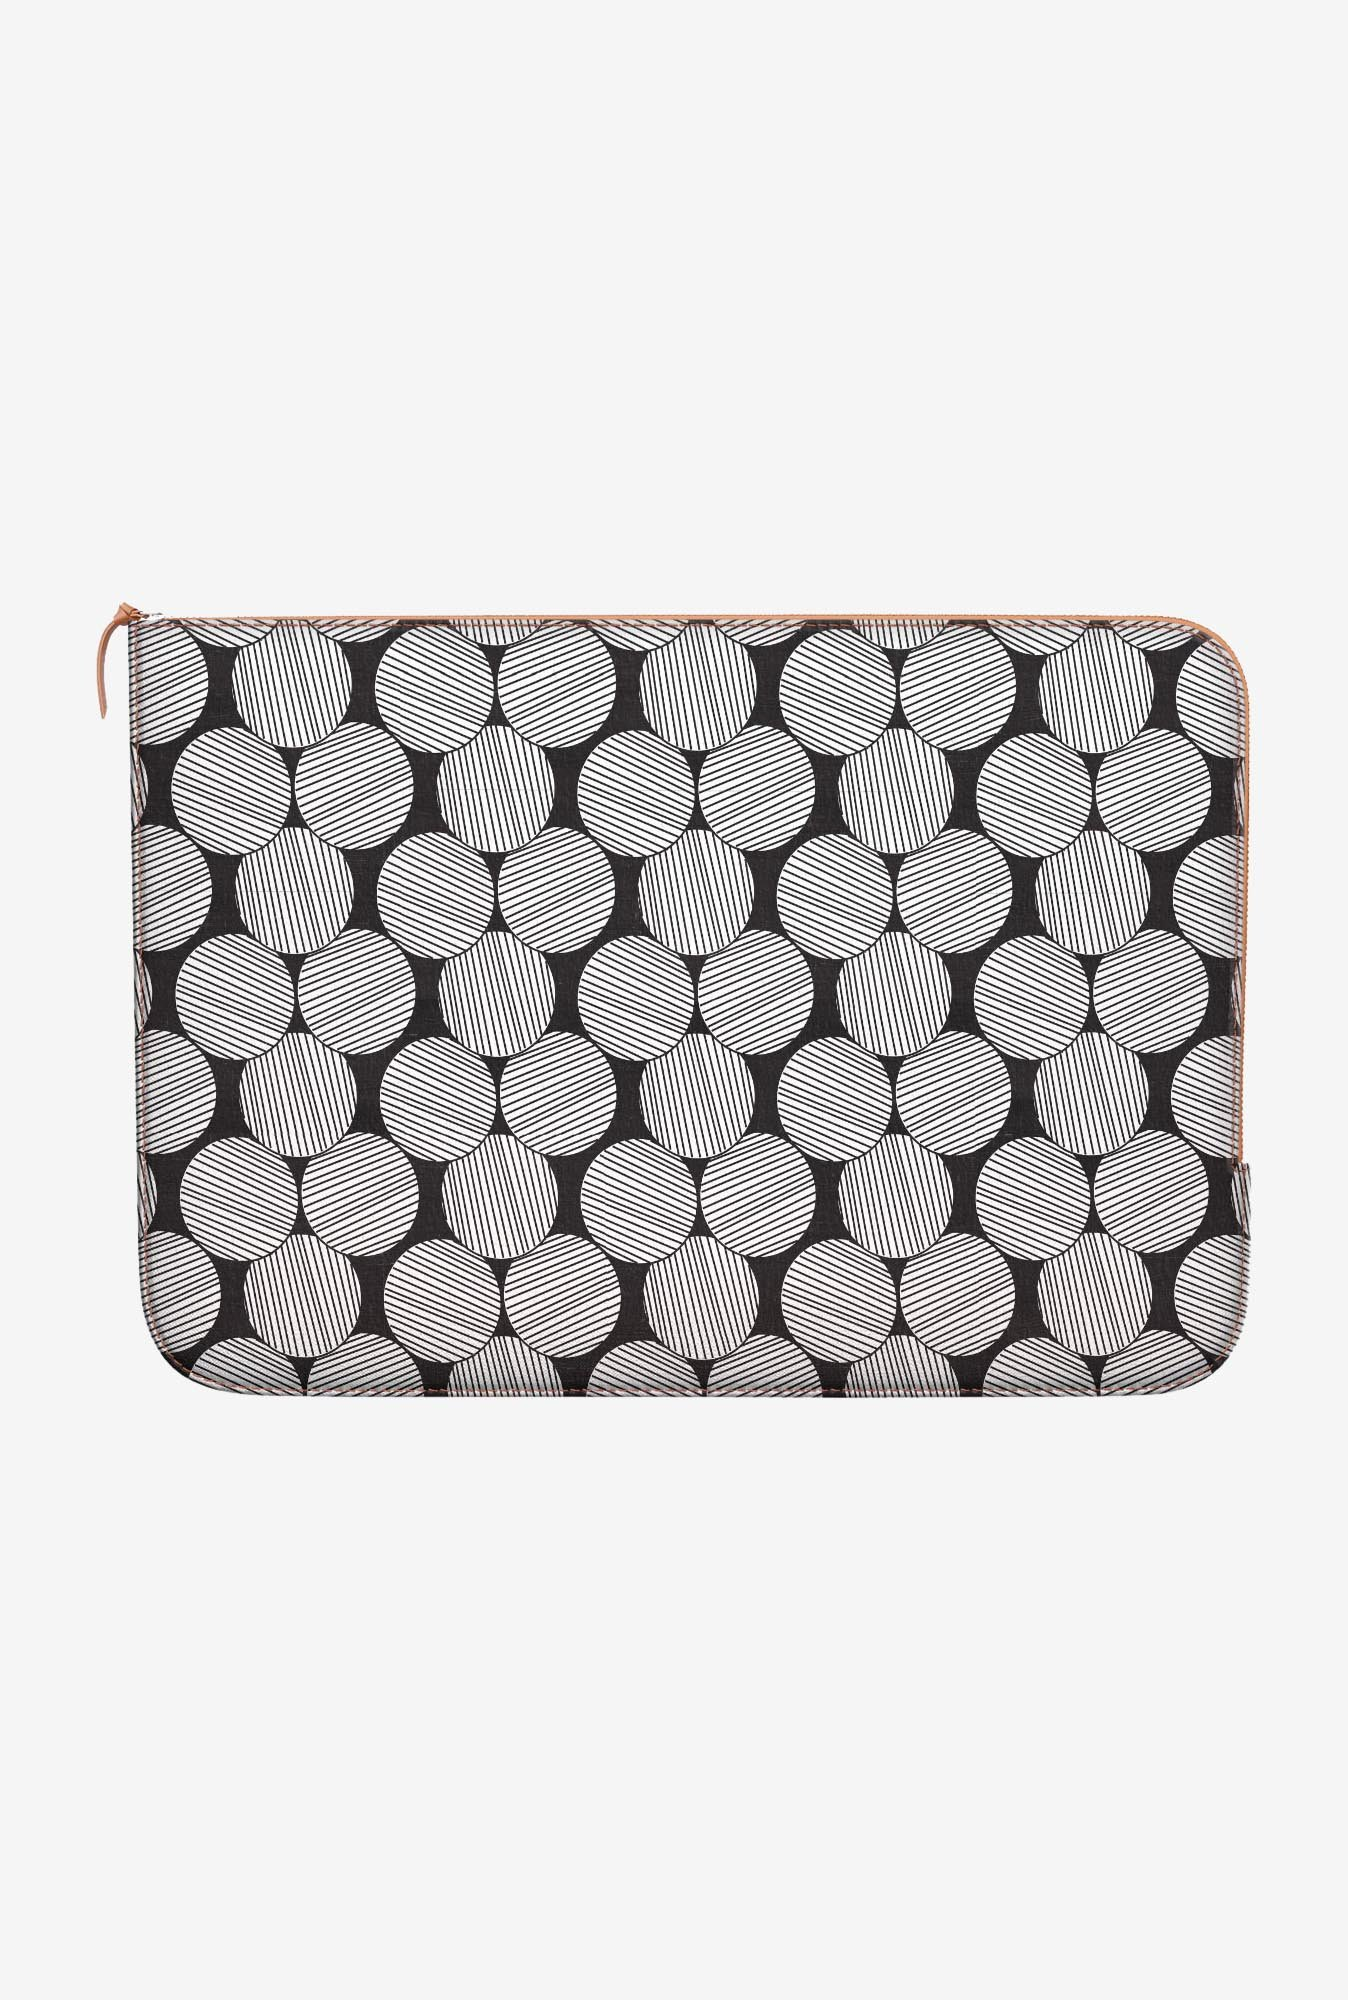 DailyObjects Lined Circles MacBook 12 Zippered Sleeve